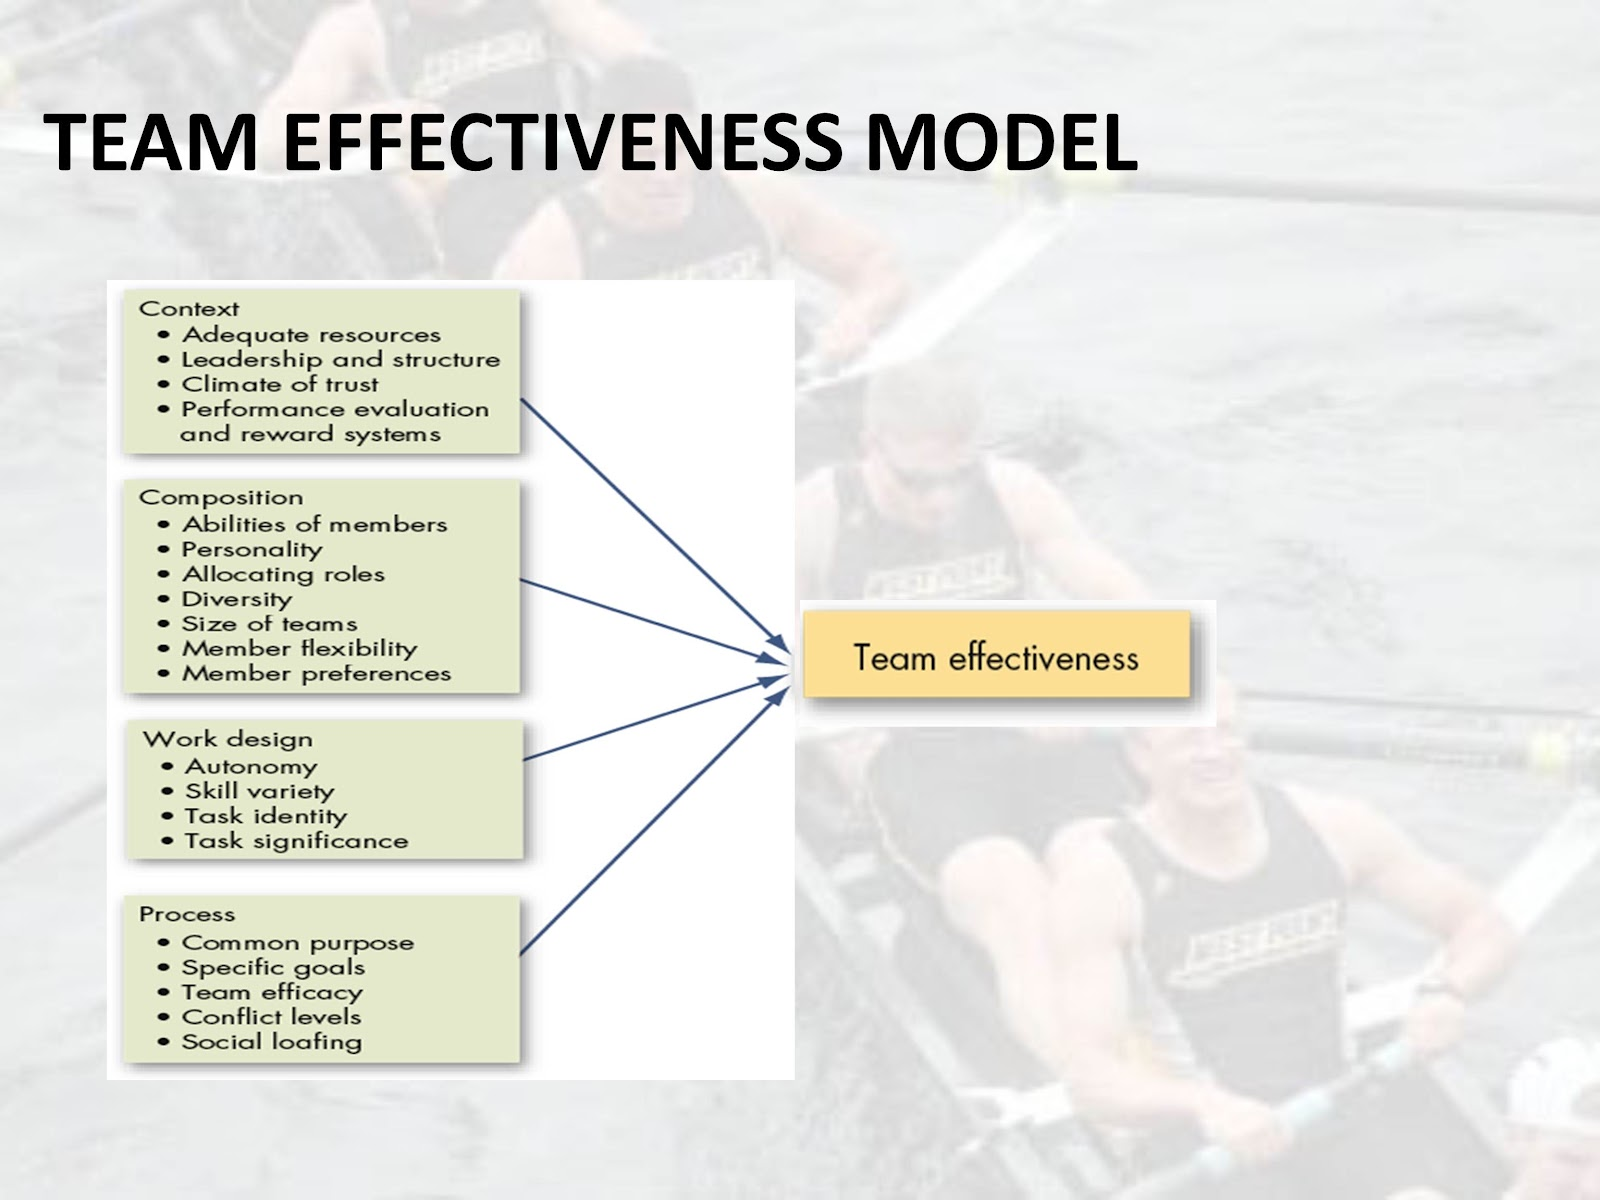 army crew case study The army crew team: a case study the army crew team: a case study executive summary after applying ob analysis, coach should switch varsity & jv the coaching staff reviewing this case.